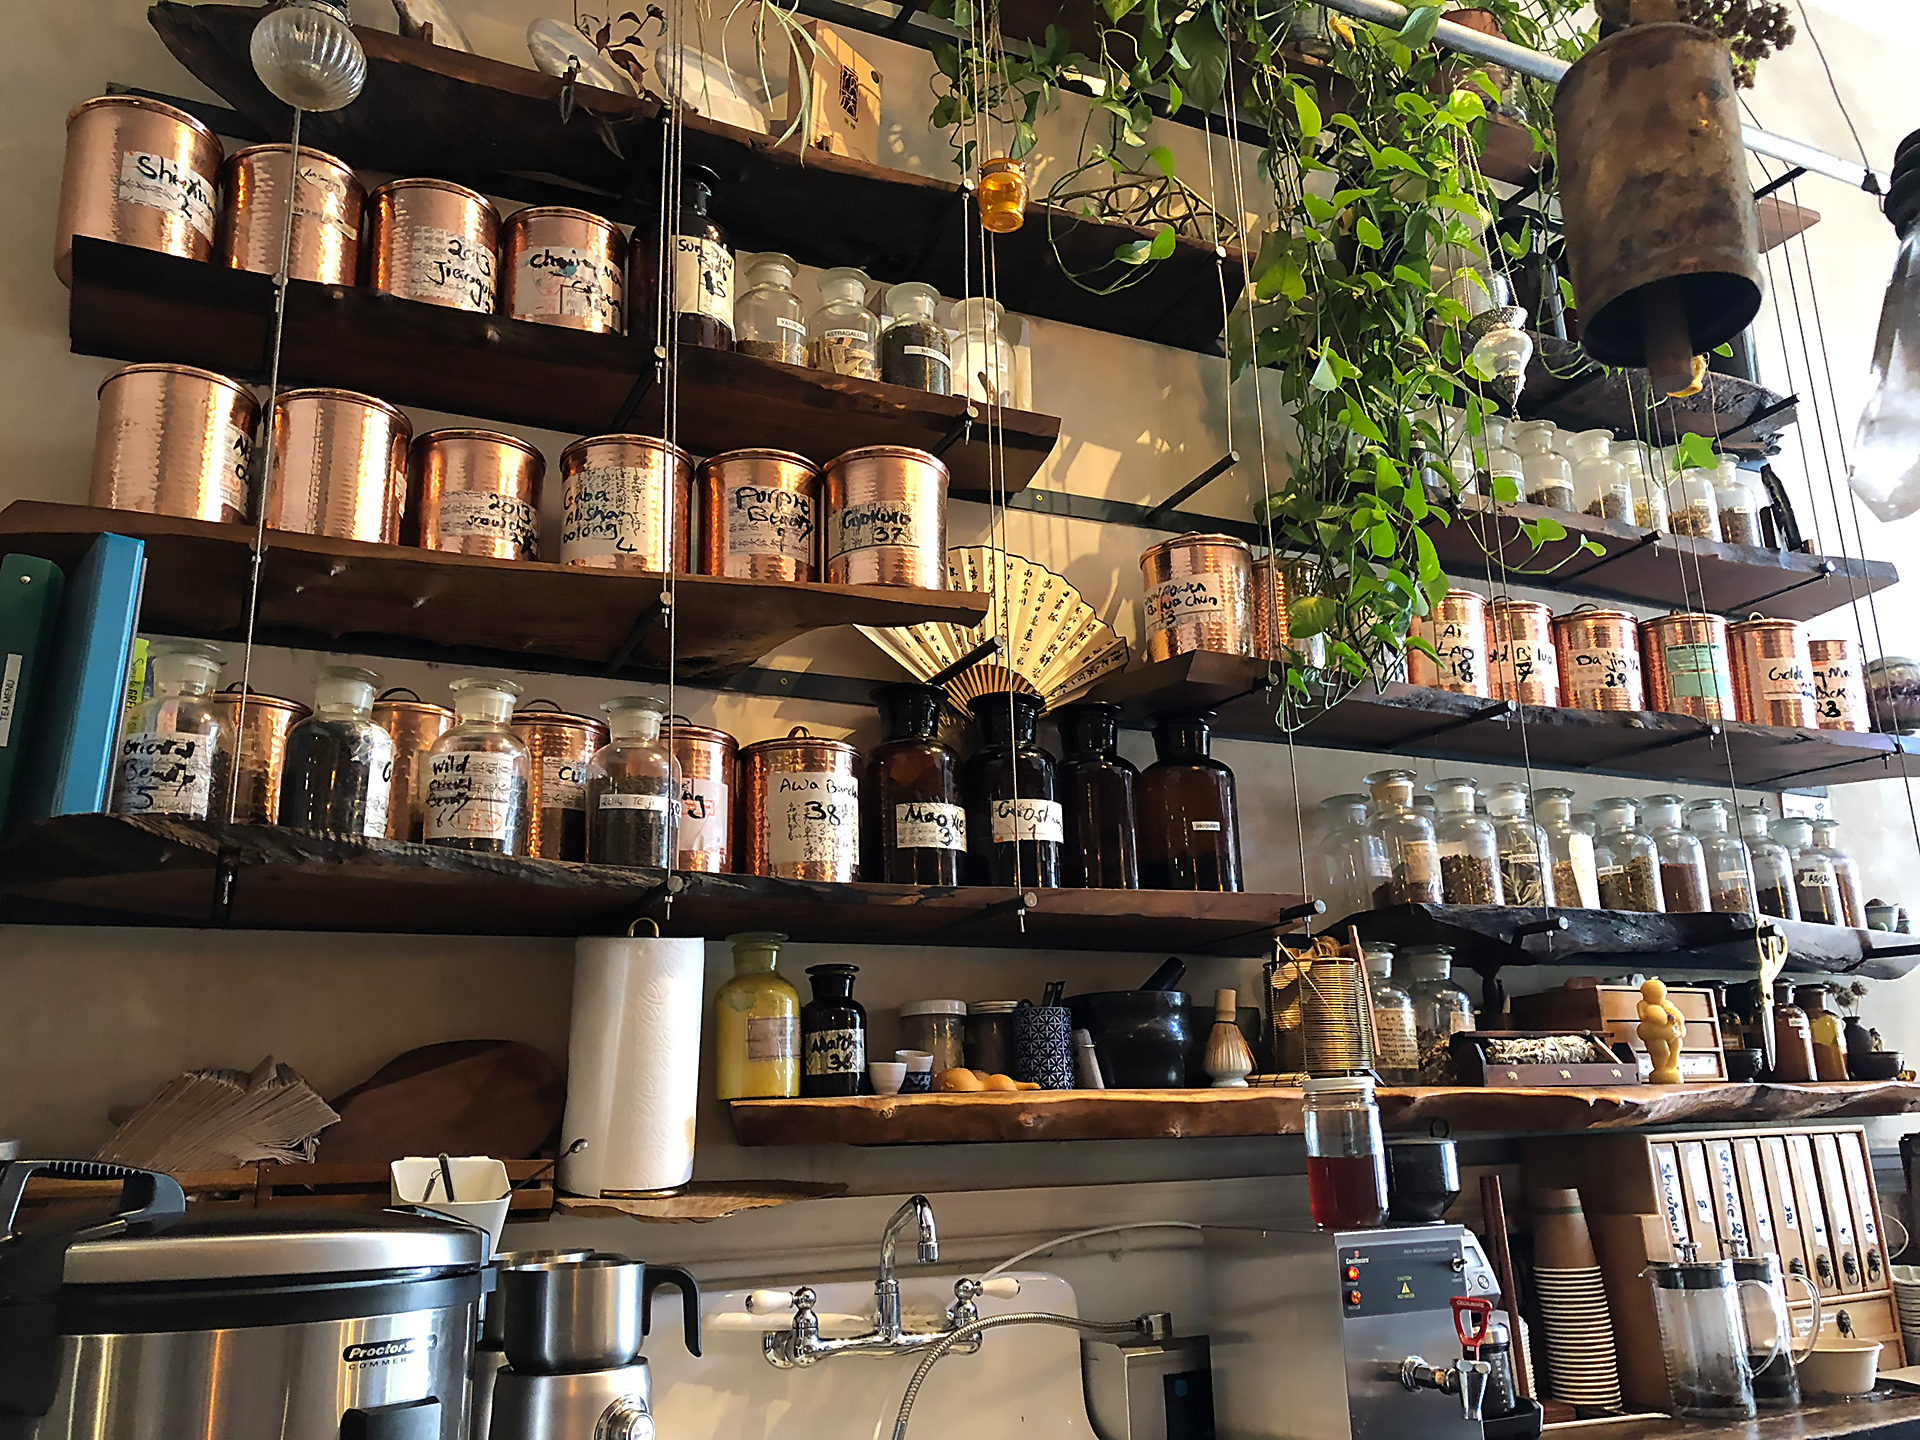 The shelves at Beloved Café are lined with herbs, teas and elixirs.